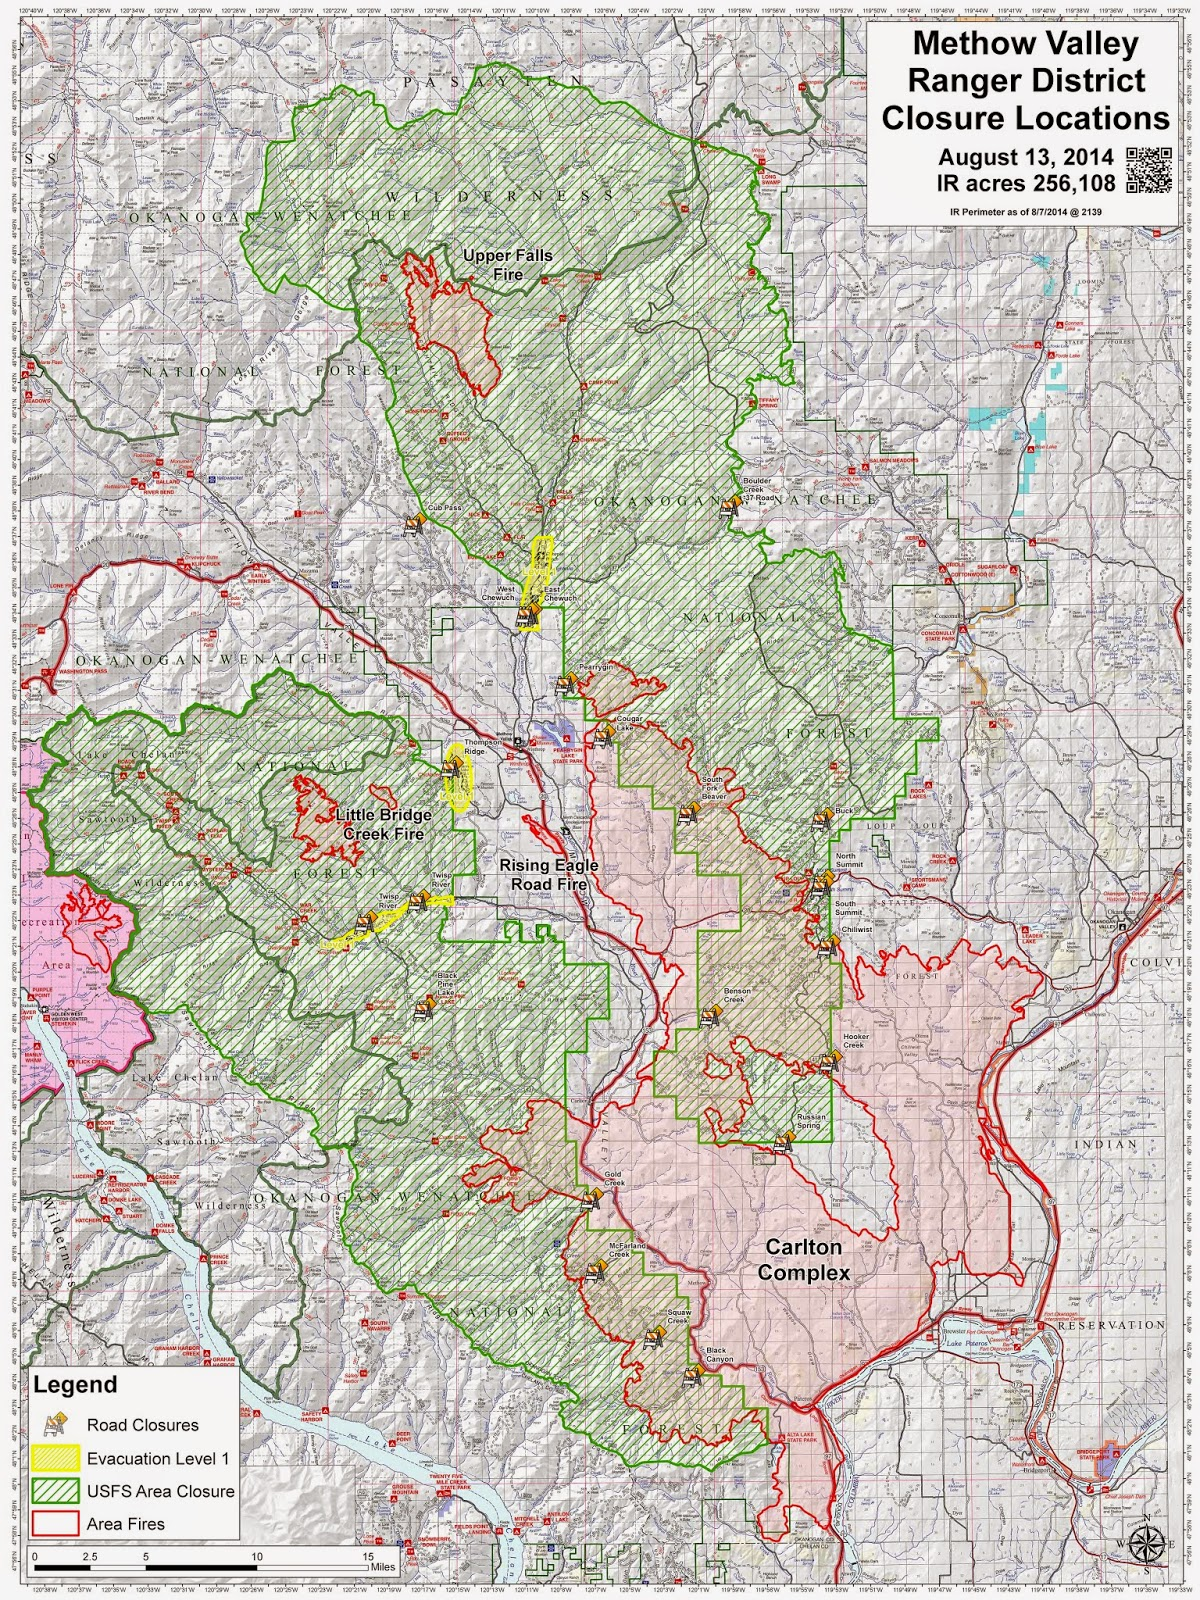 for specific information on okanogan wenatchee national forest wildfire area closures see link information http www fs usda gov detail okawen home cid